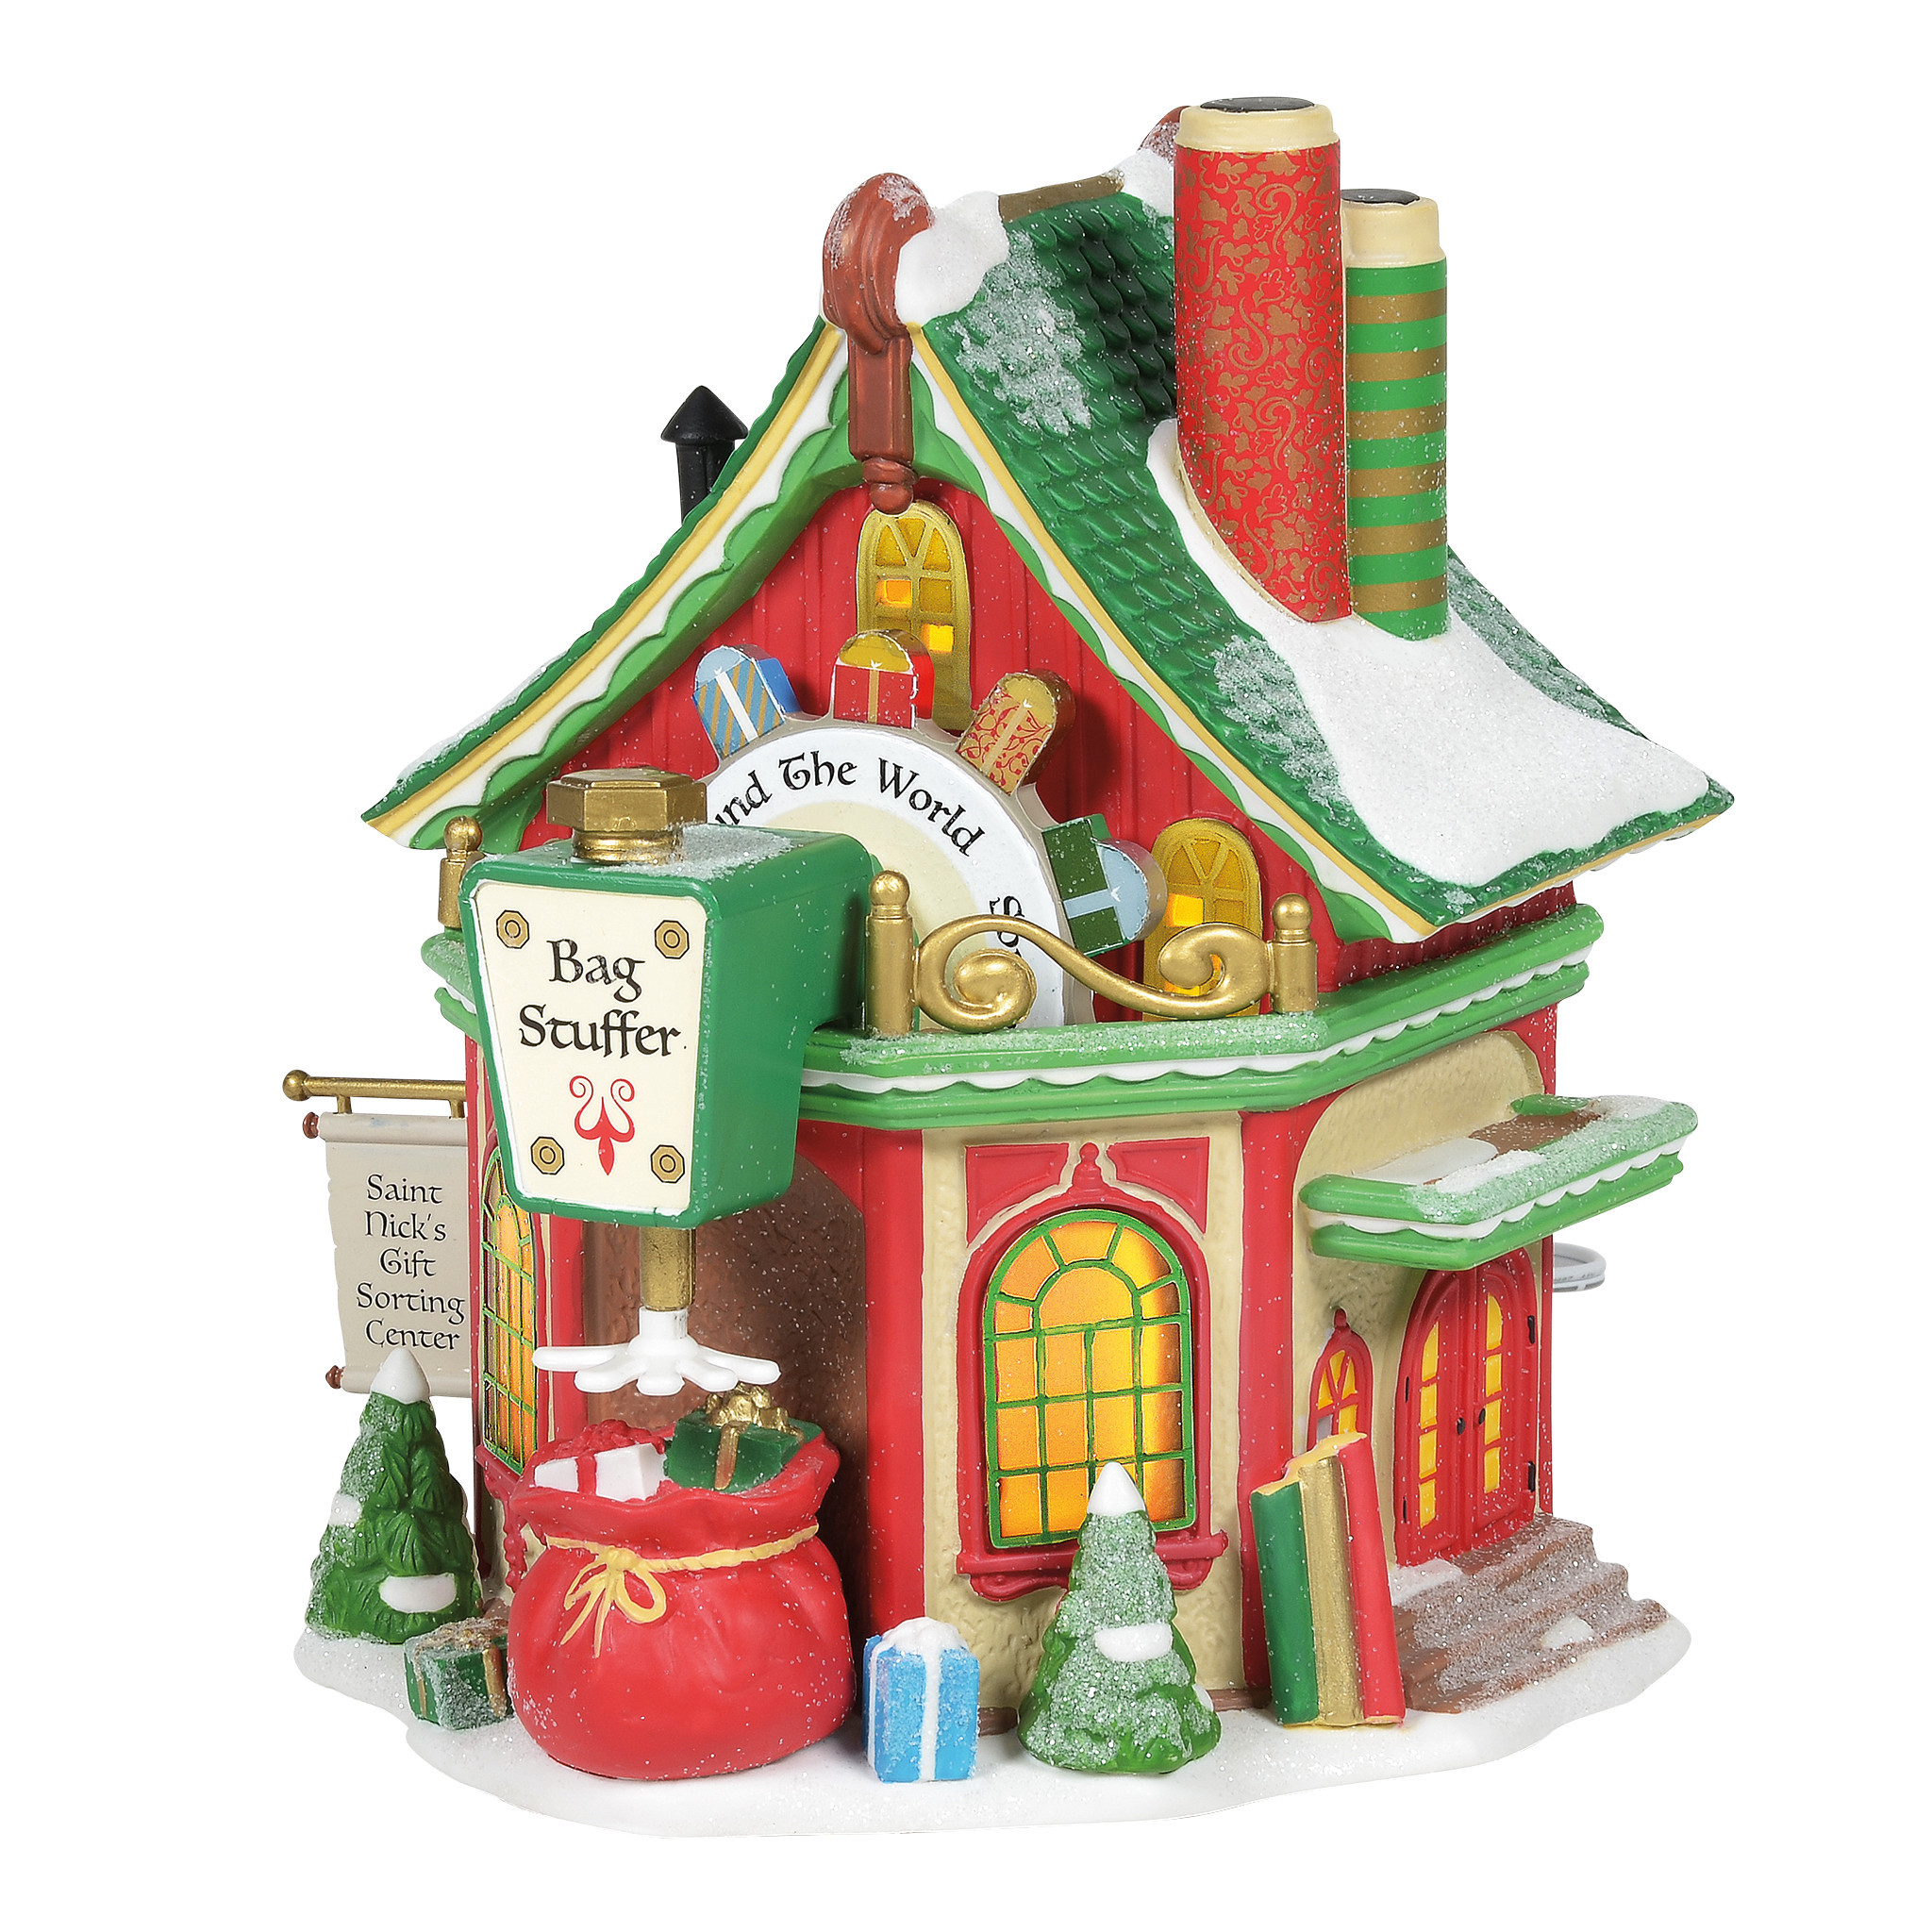 Department 56 ® - Buildings 'Saint Nick's Gift Sorting Centre (Europe) '